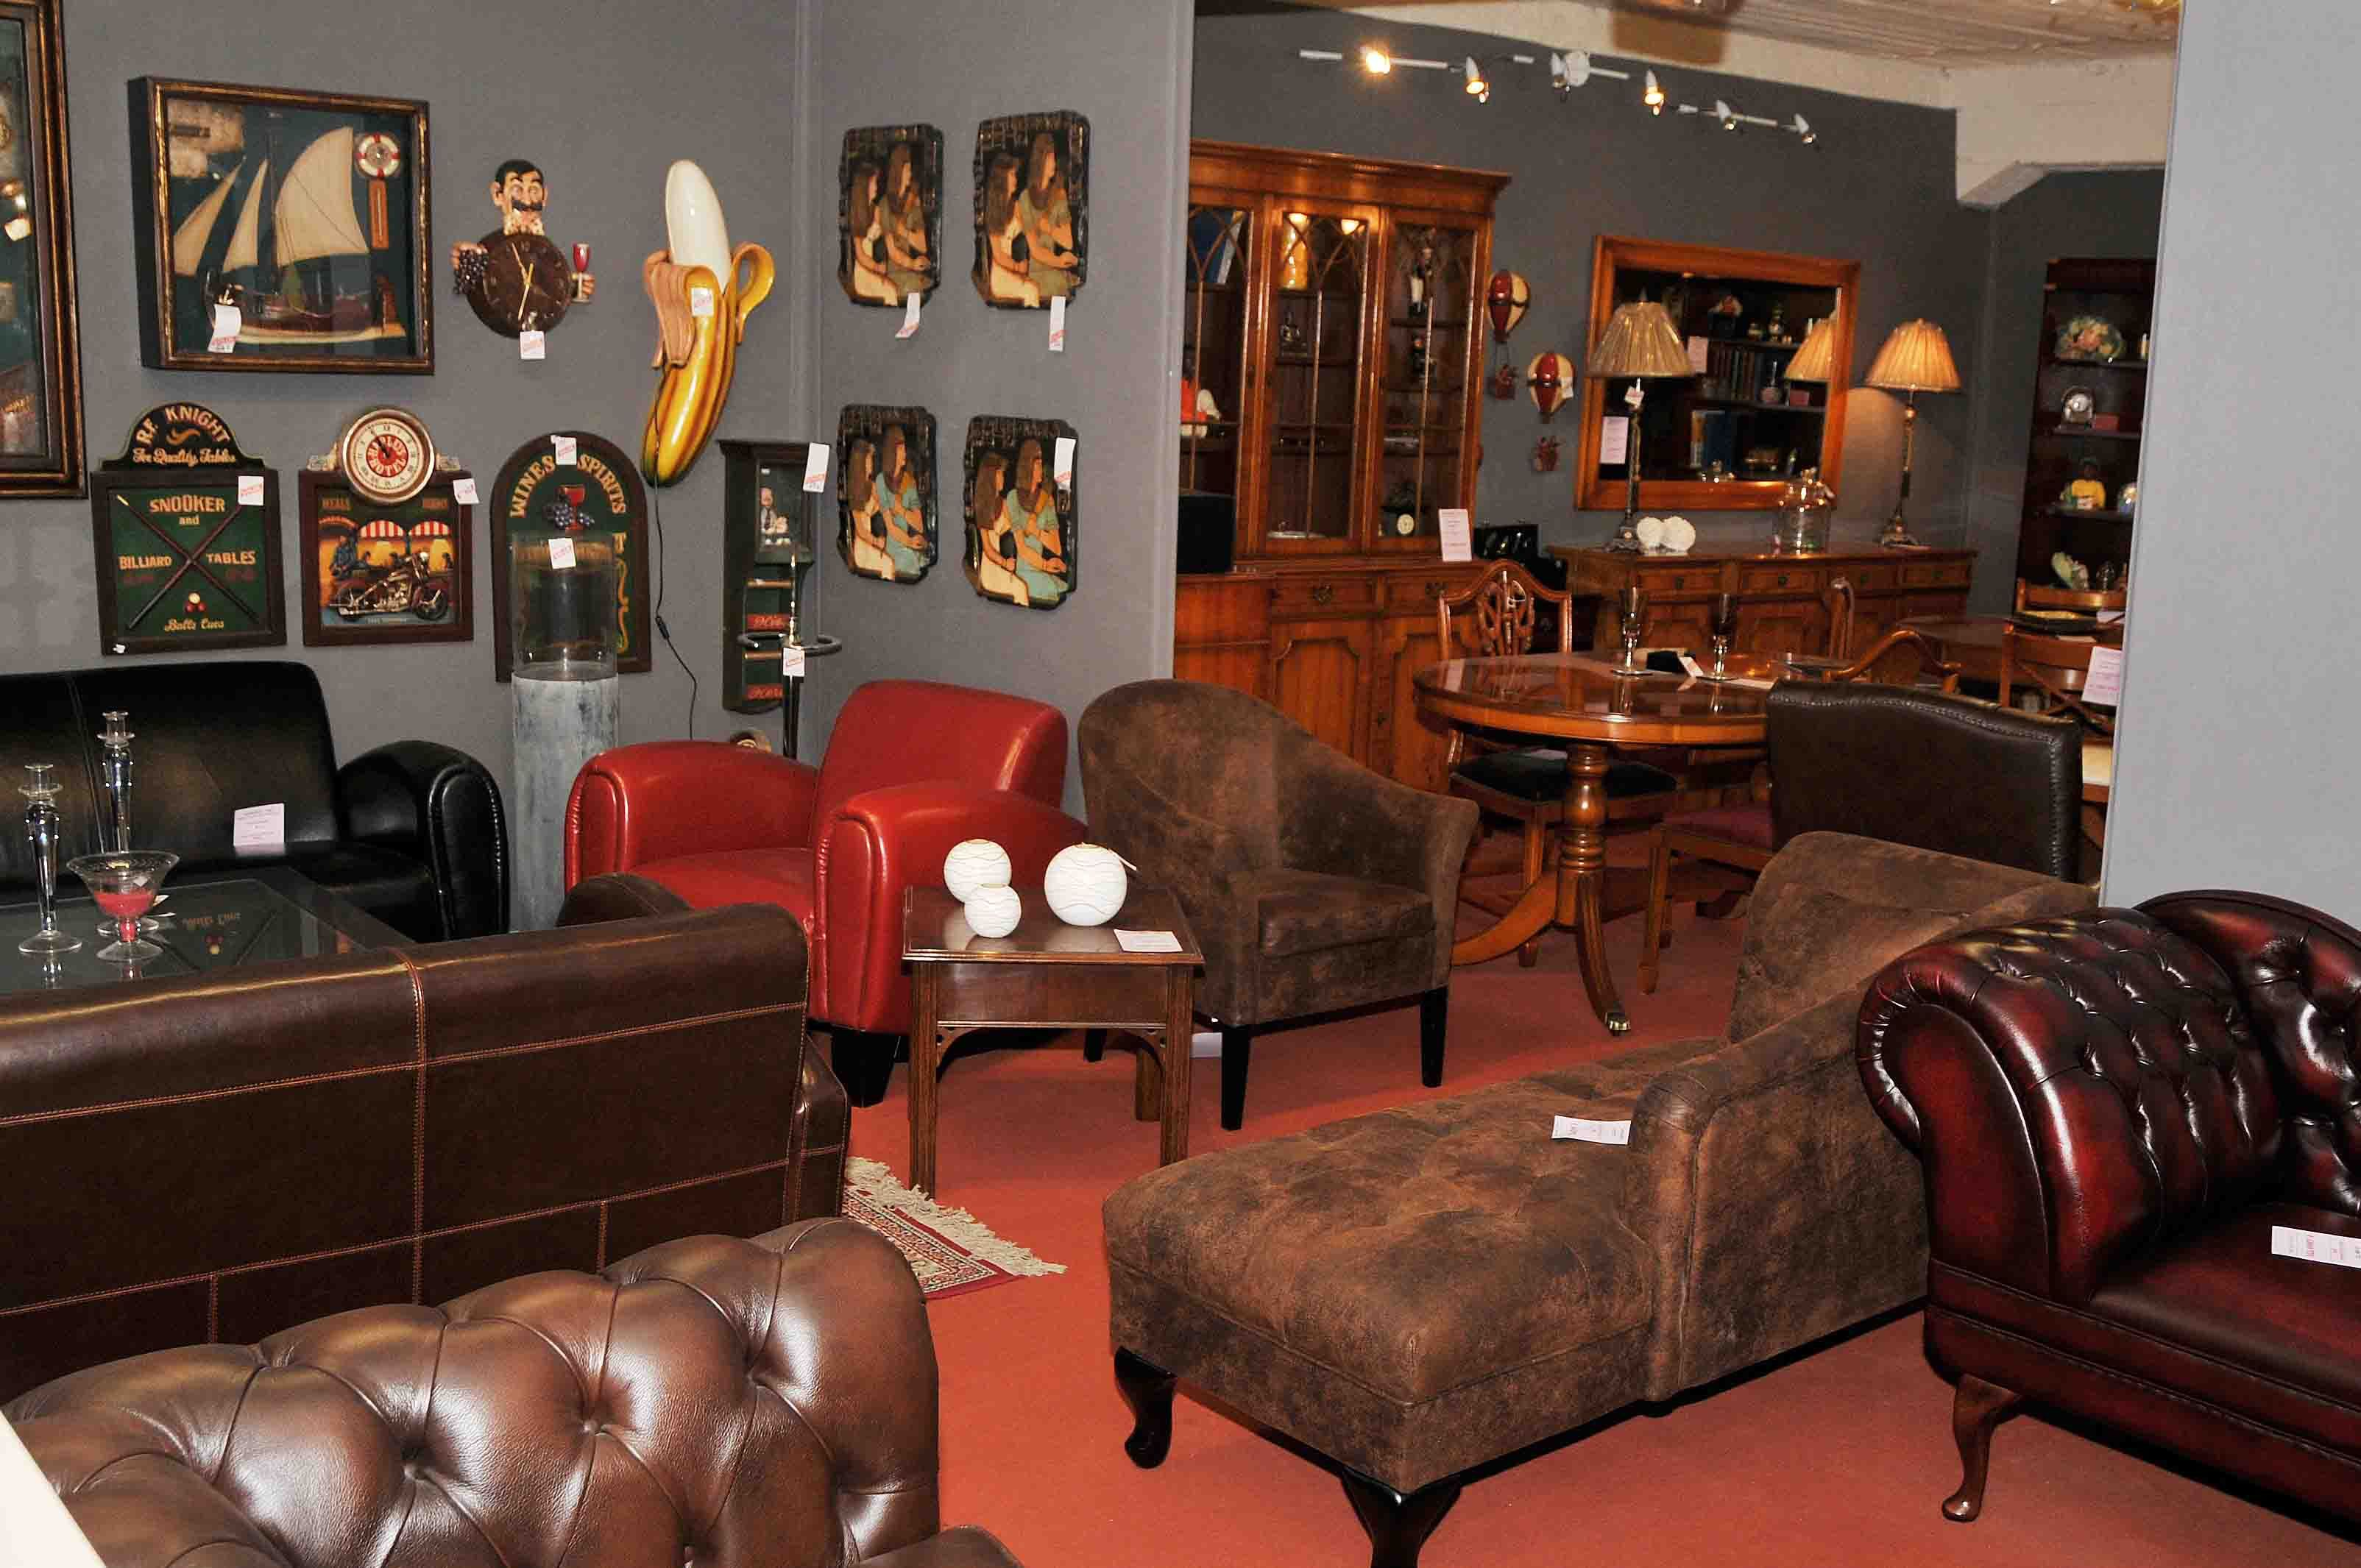 Deco Salon Chesterfield Canapés Club Et Sofas Chesterfield En Cuir De Vachette